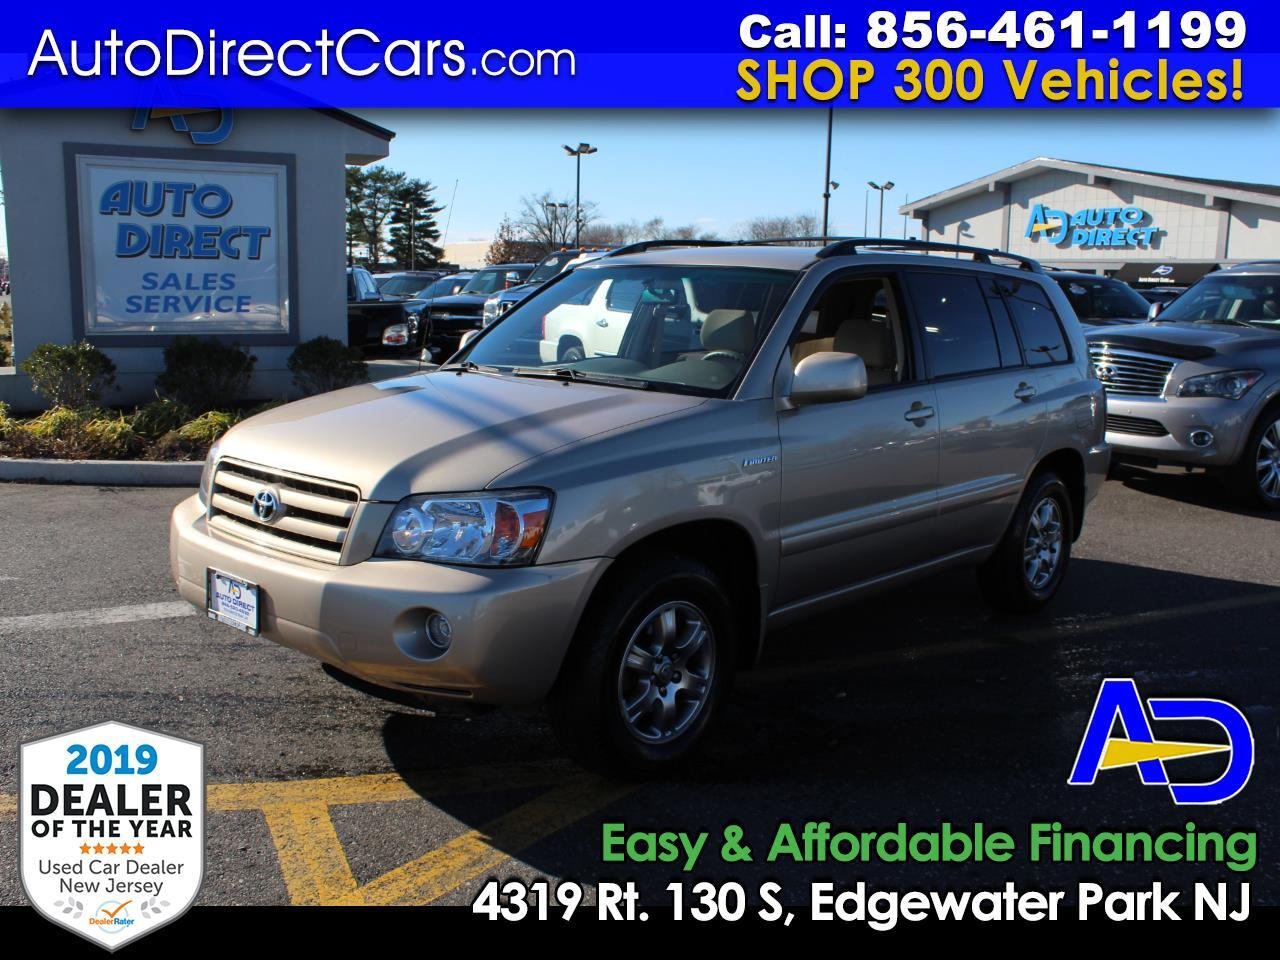 2005 Toyota Highlander 4dr V6 4WD Limited (Natl)